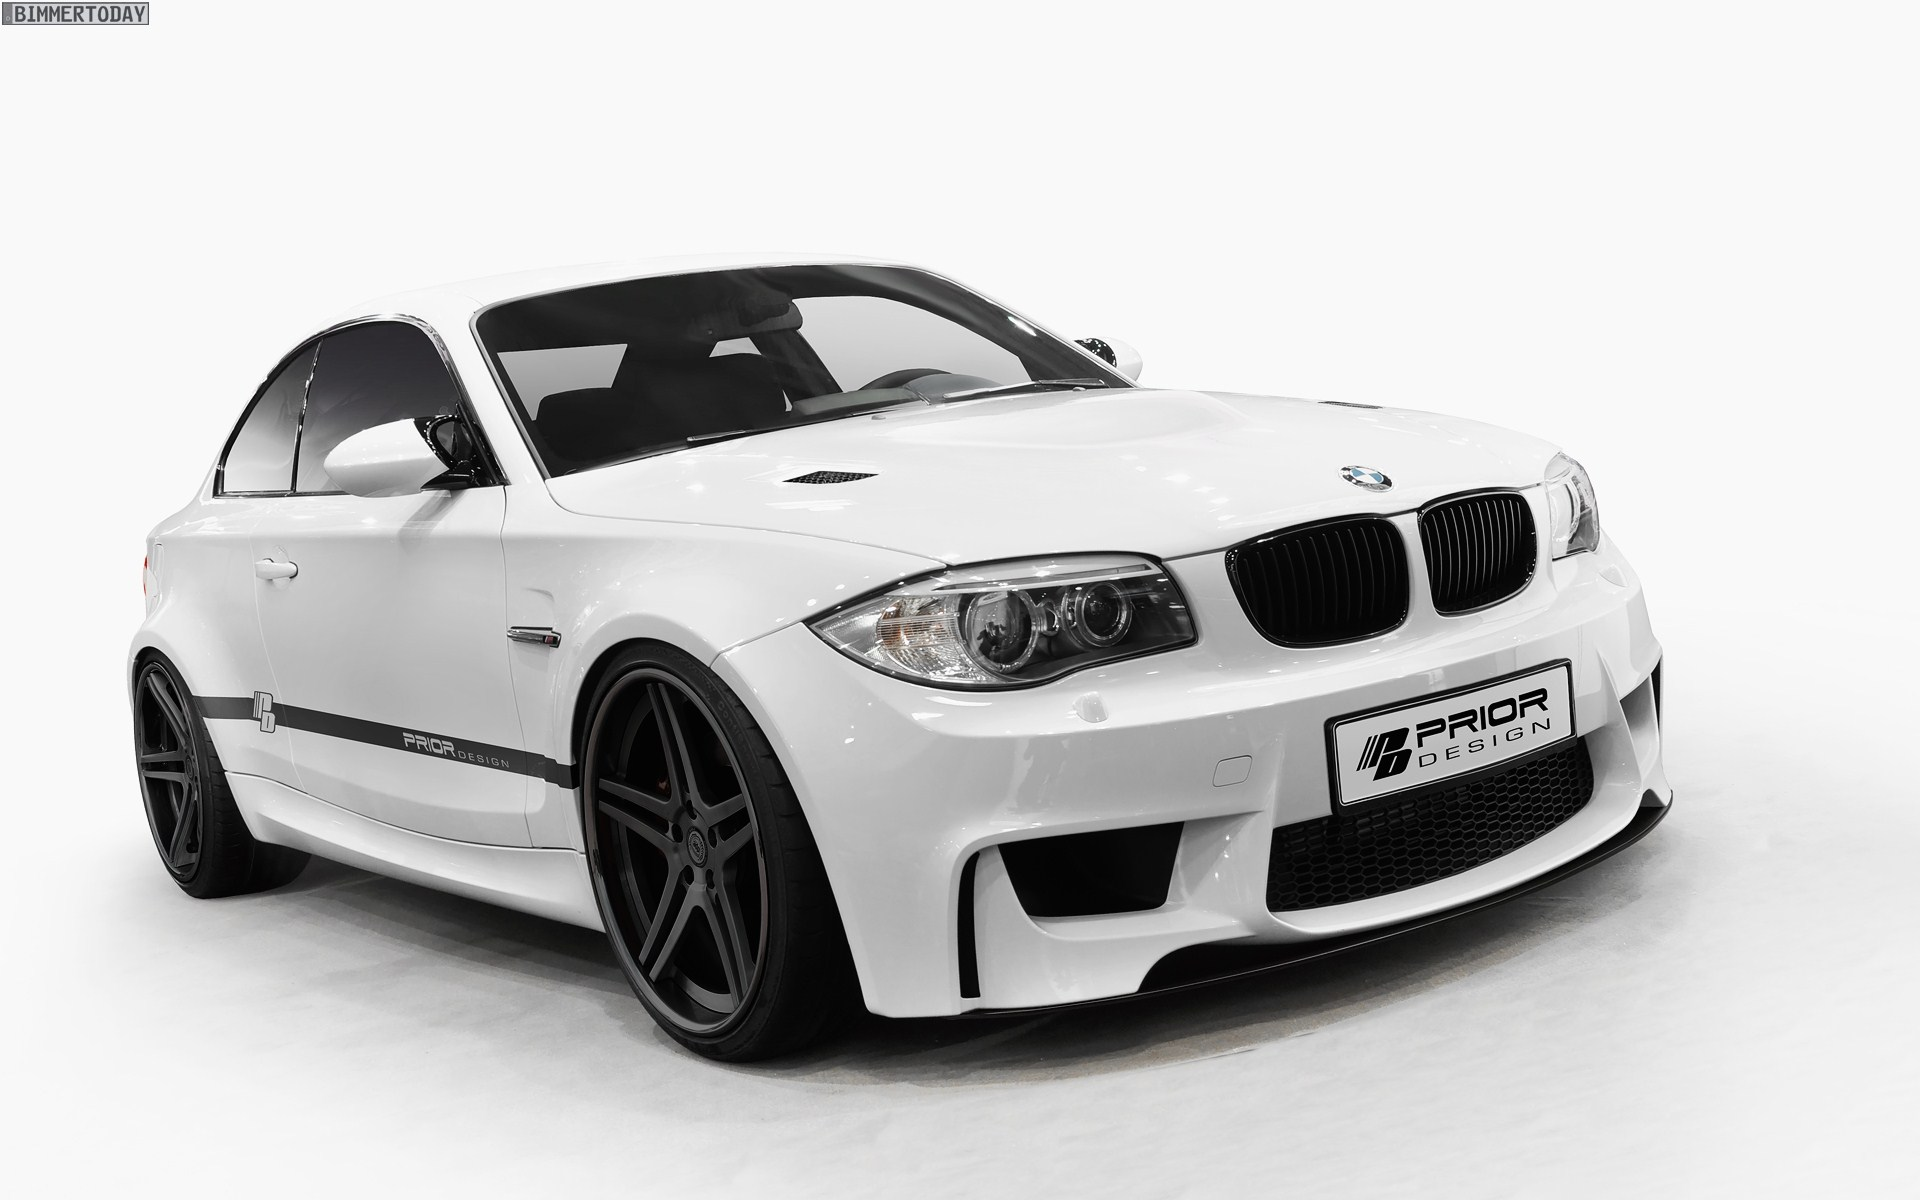 bmw 1er coupe (e82) 2015 images #10